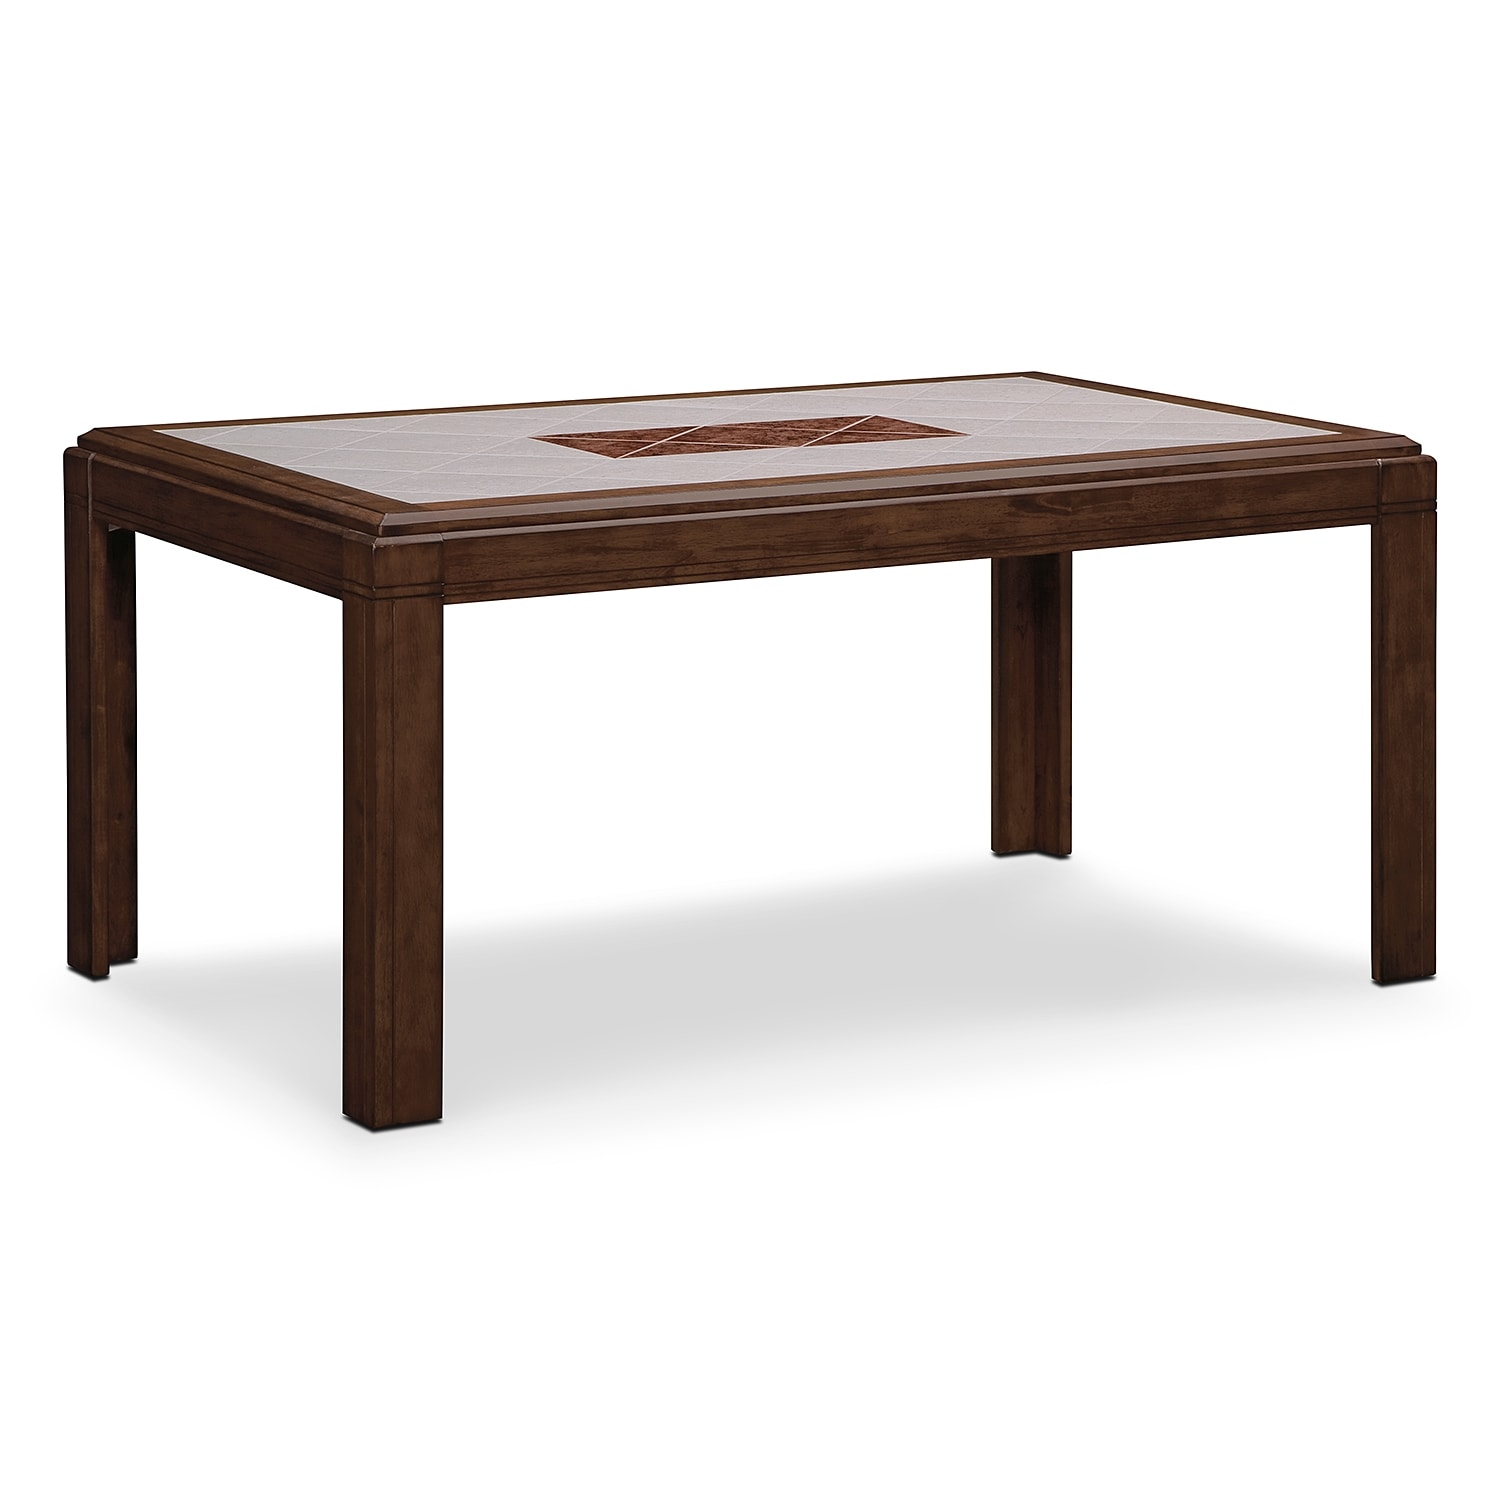 Dining Room Furniture - Hillsboro Table